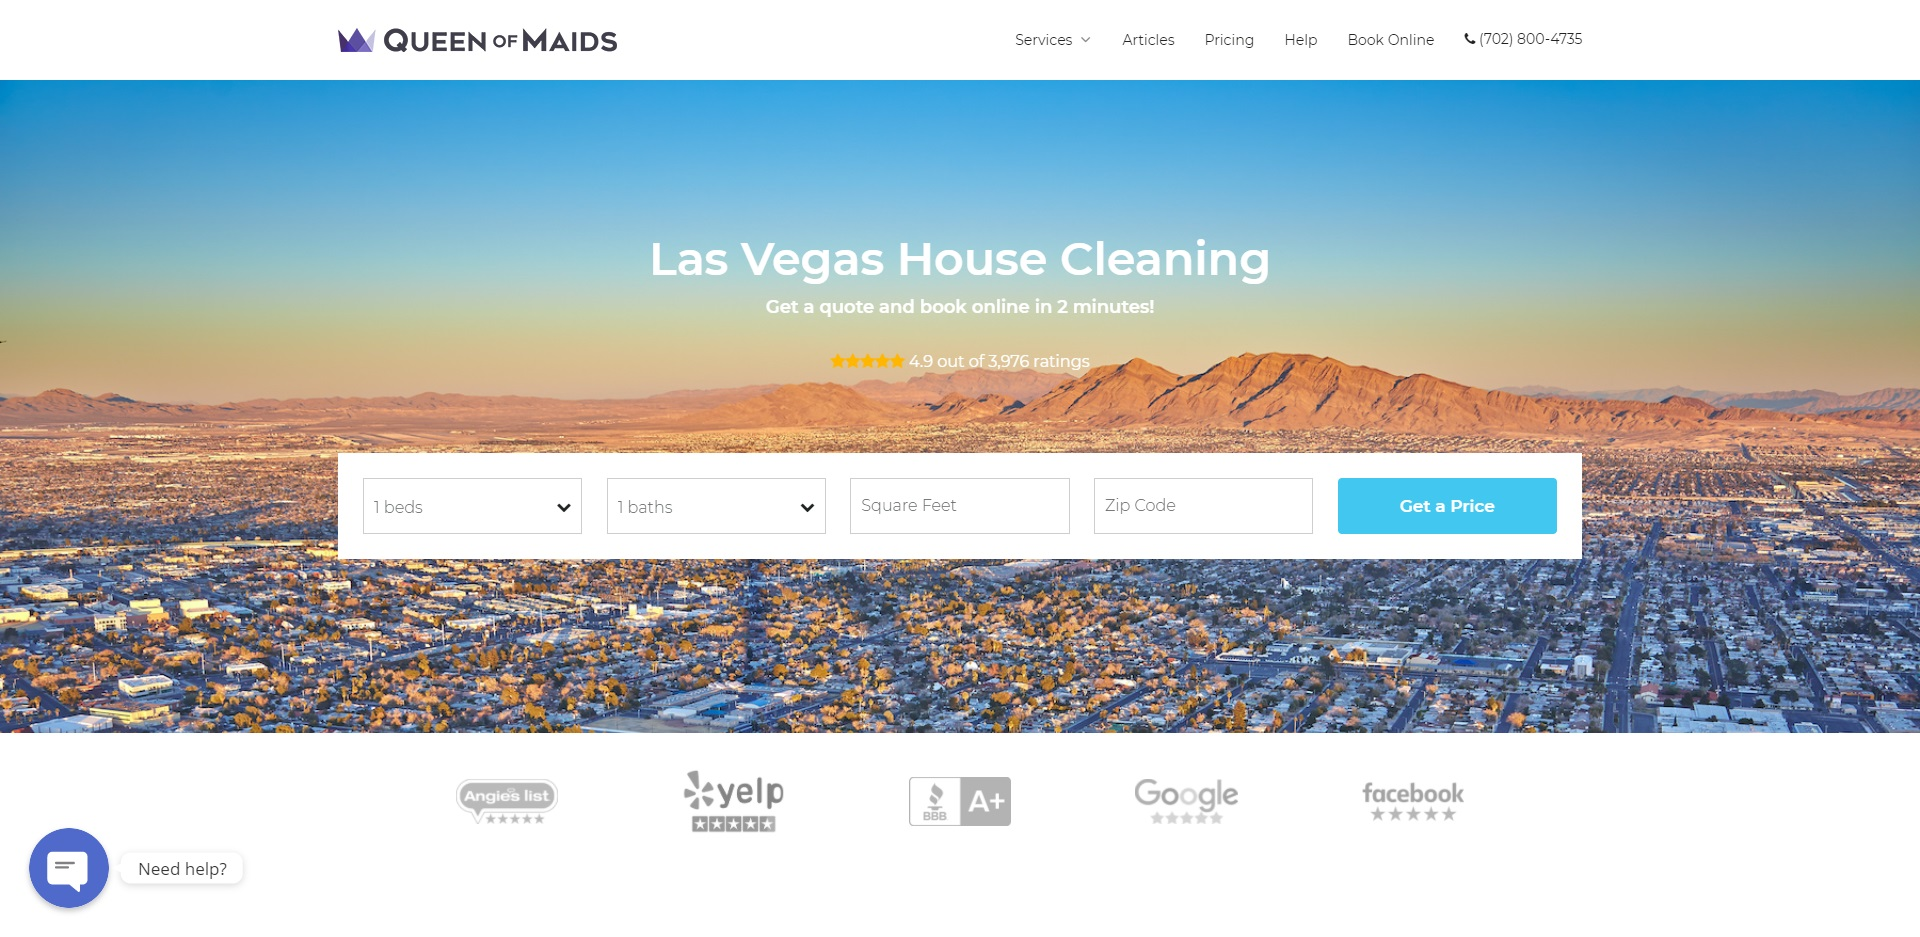 Las Vegas, NV Best House Cleaning Services